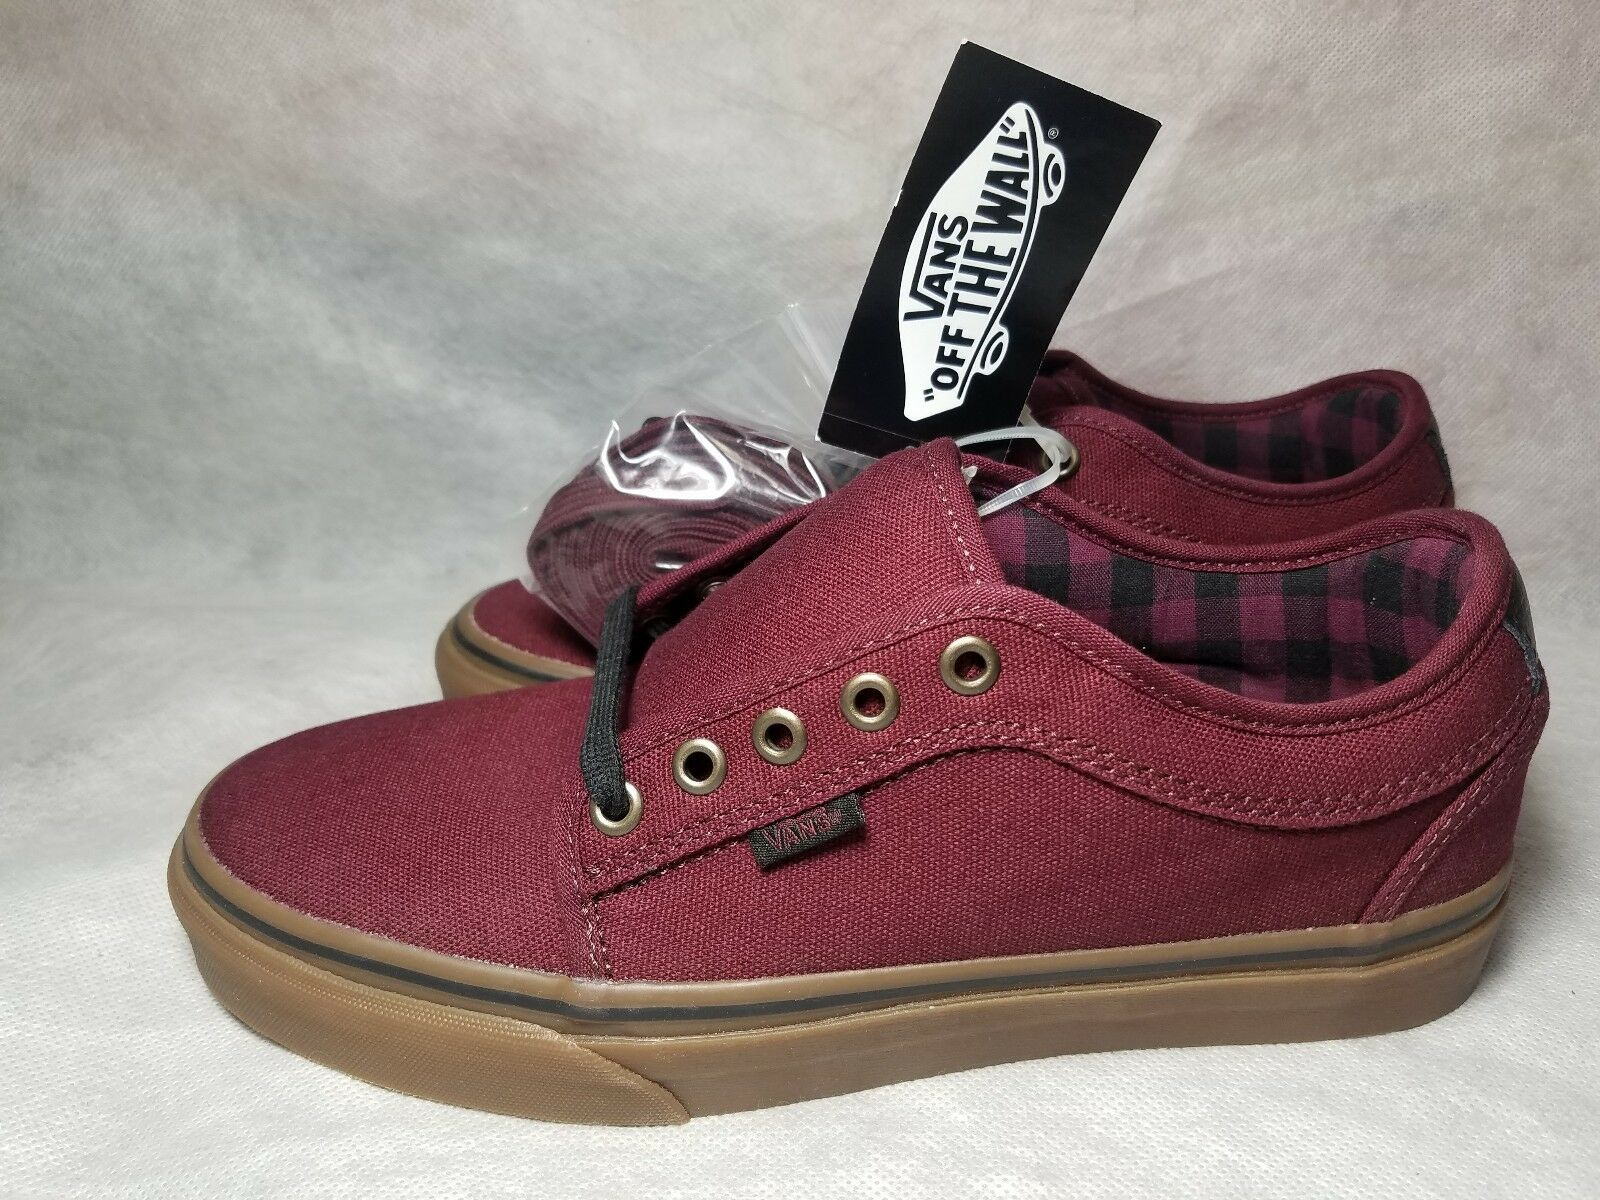 New Chukka Vans Chukka New Low Pro Canvas Plaid Leather Red Black Gum Skate Shoe Men Size 7 37eeda